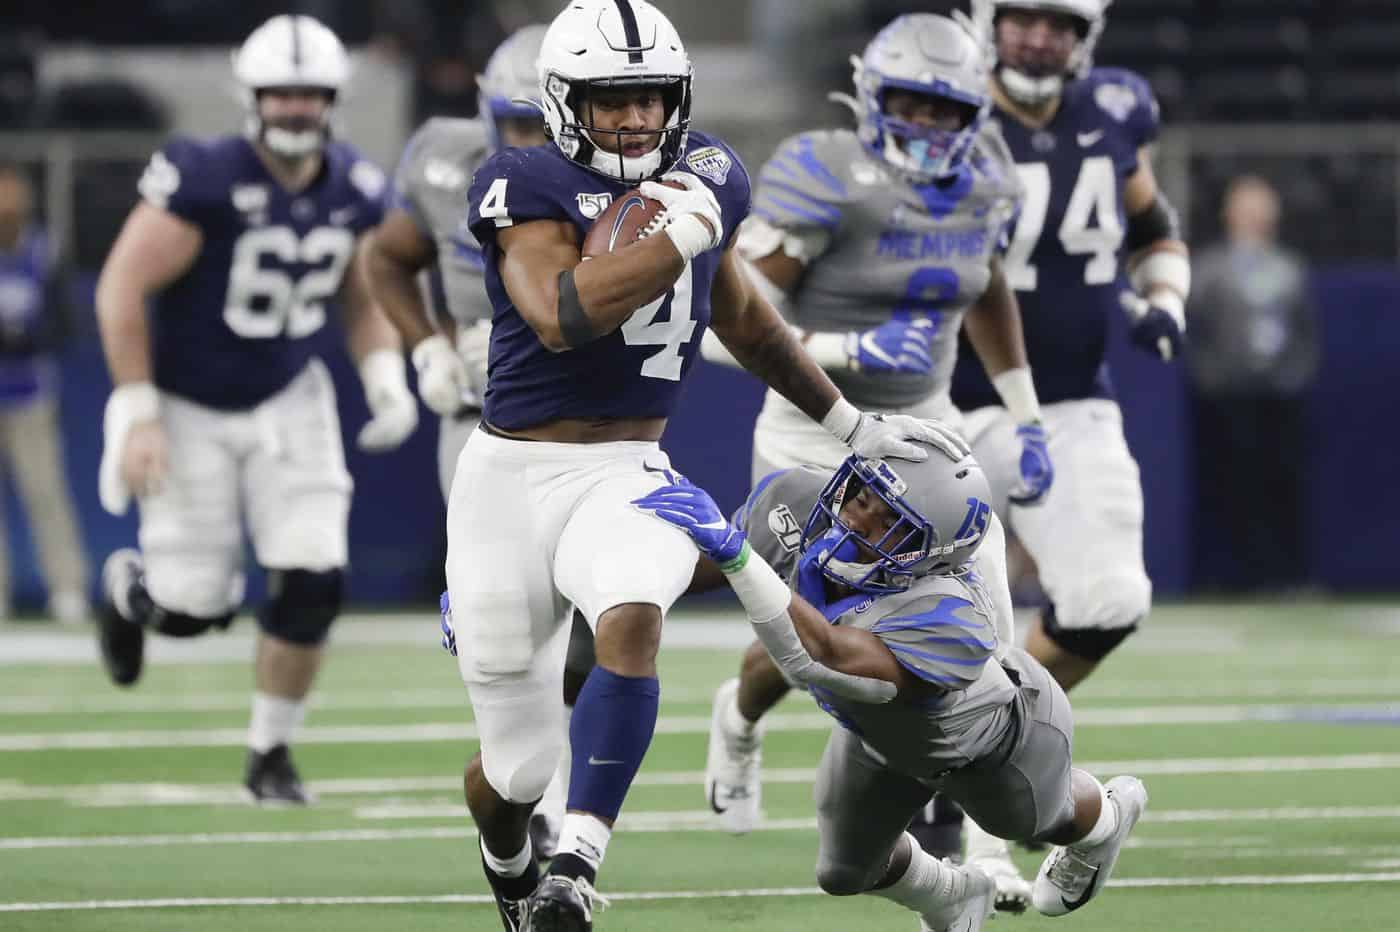 2021 NFL Draft: What traits make Journey Brown a standout RB?